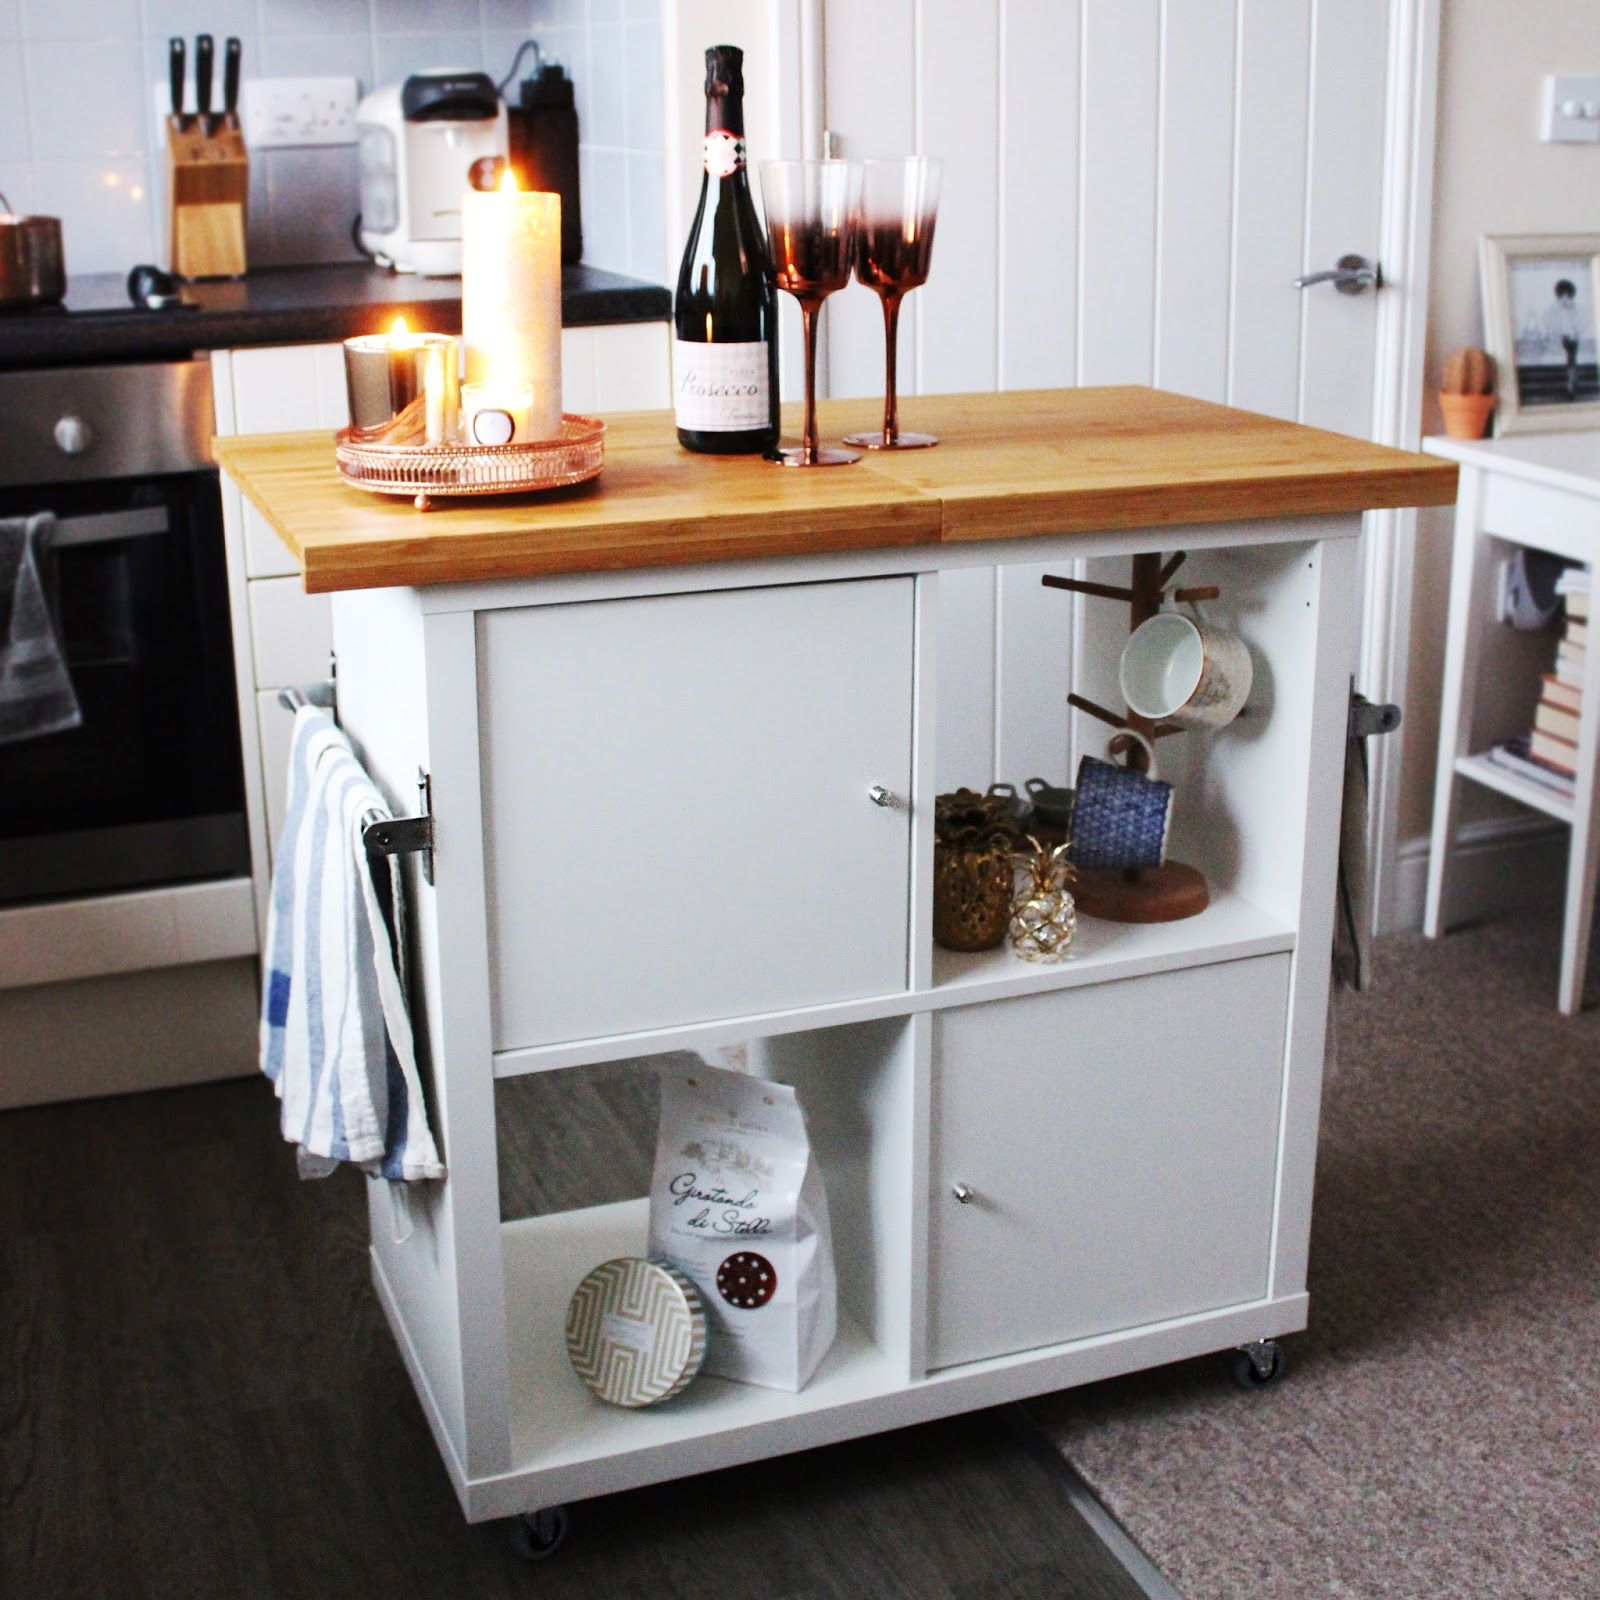 Charming Canu0027t Find (or Afford) The Kitchen Island Of Your Dreams? Make One From IKEA  Parts